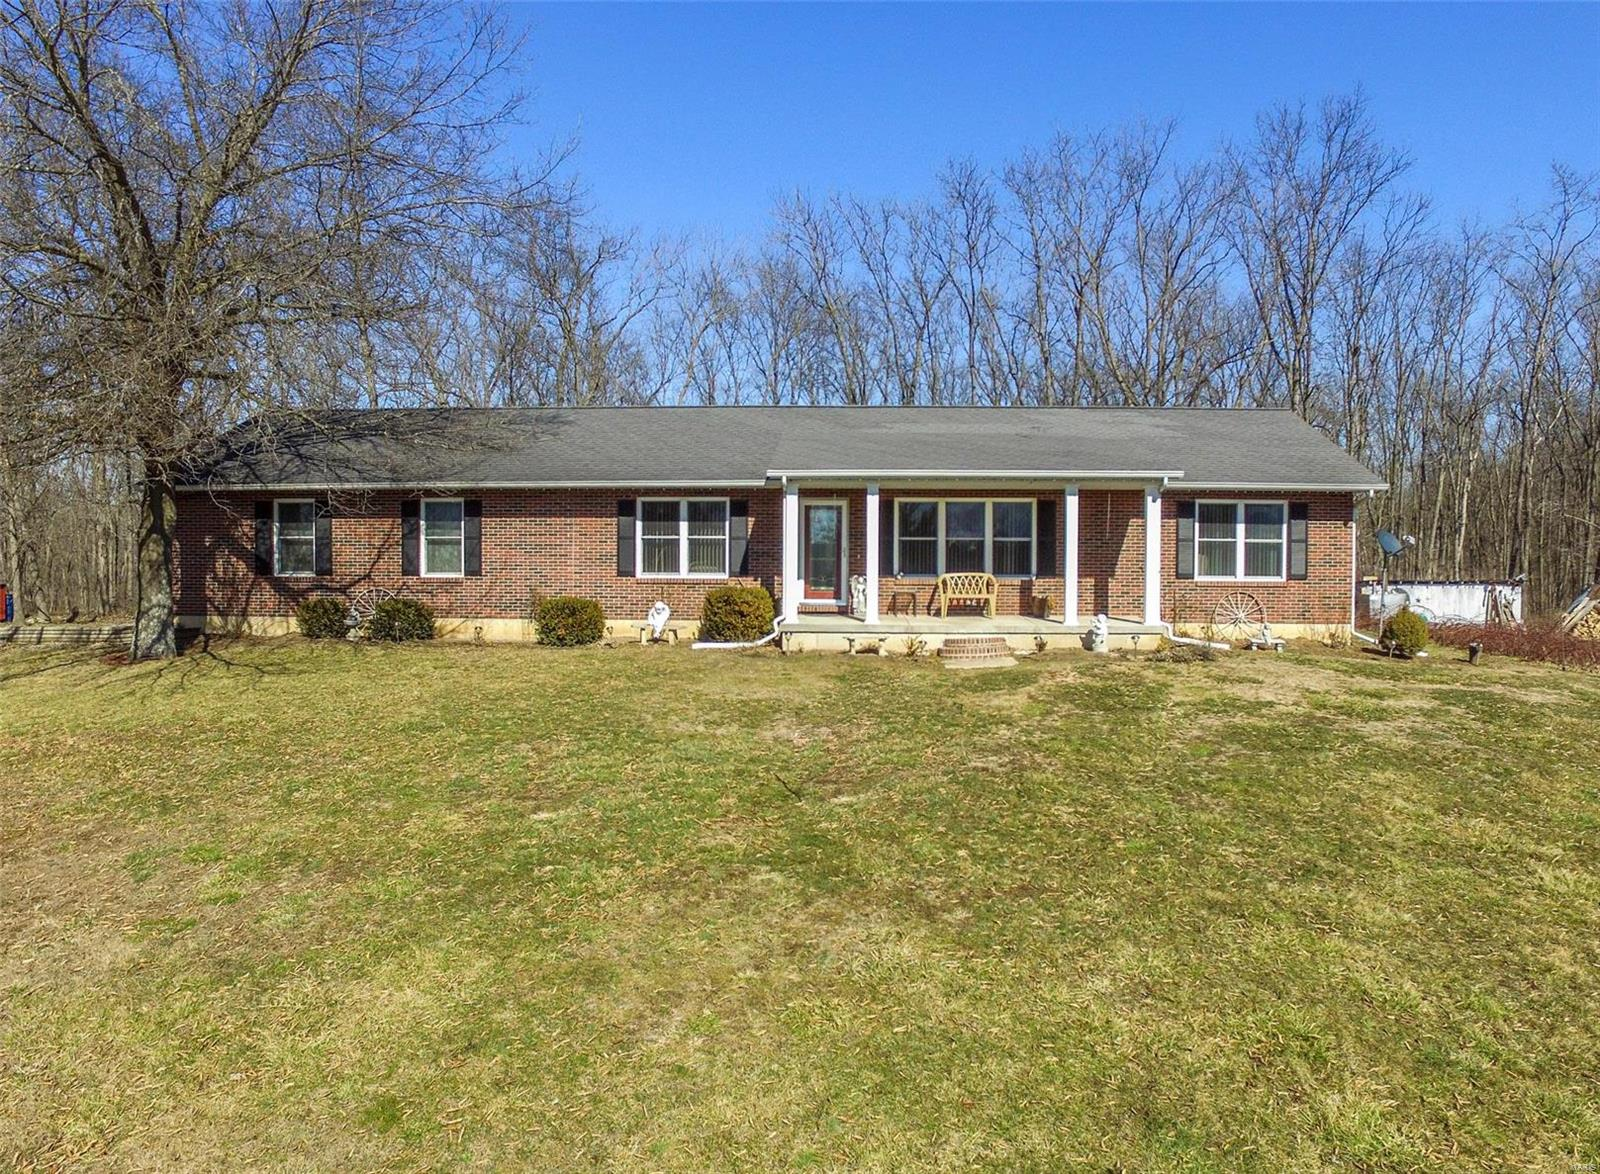 405 Flamm Property Photo - Silex, MO real estate listing